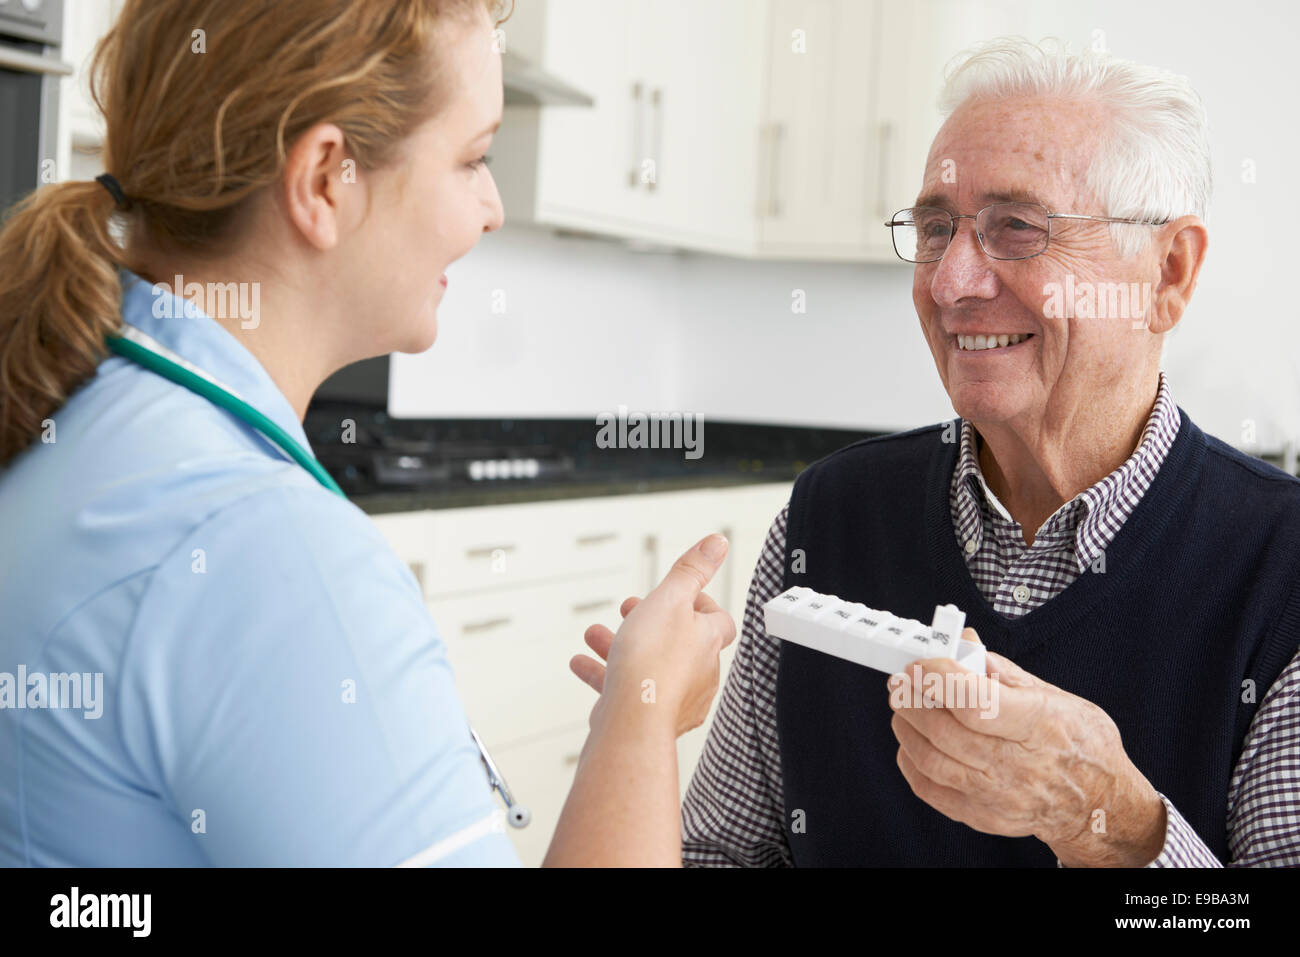 Nurse Helping Senior Man With Medication - Stock Image